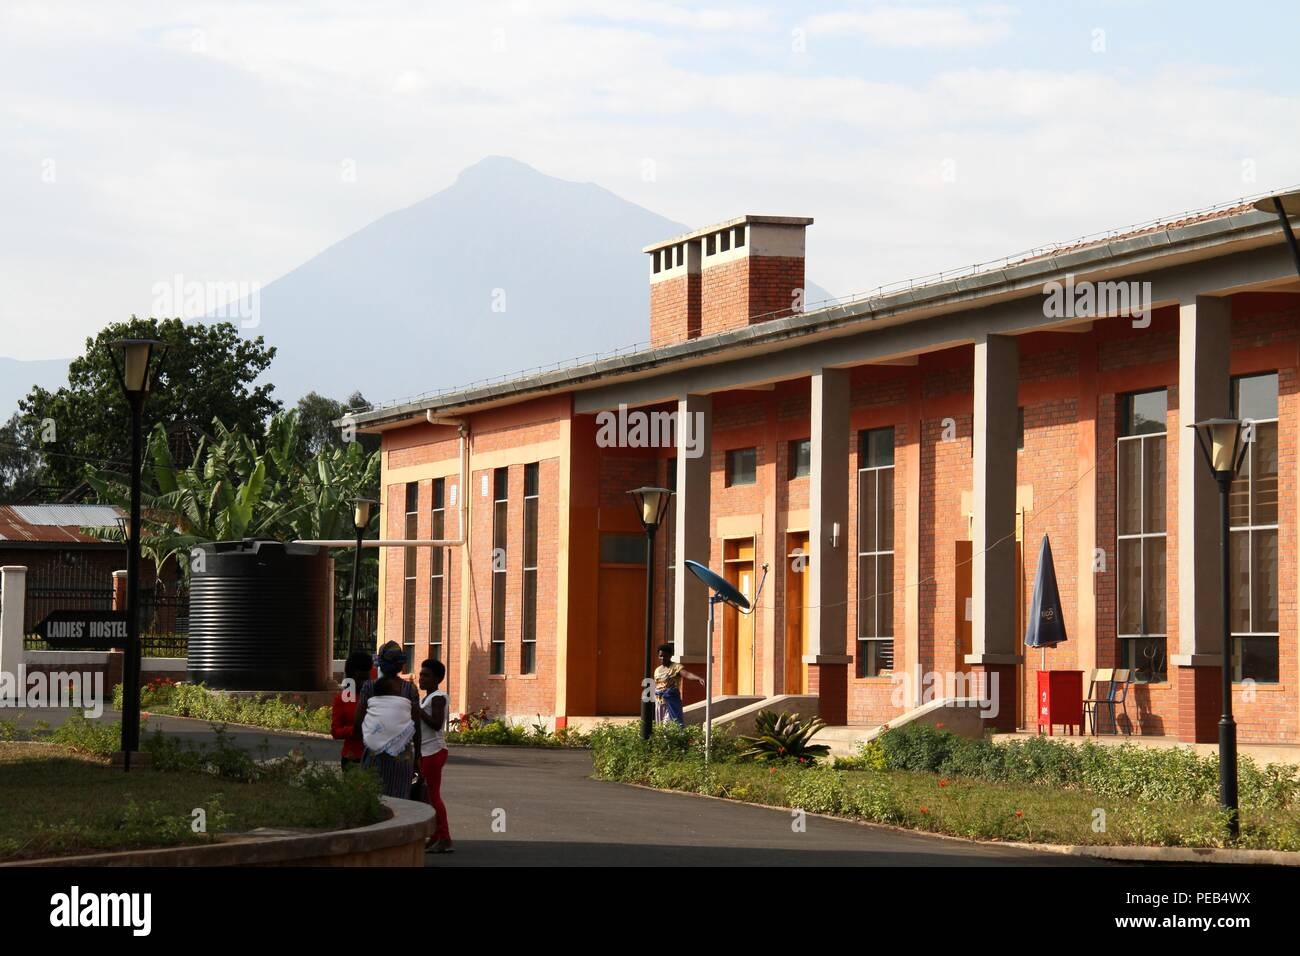 Musanze, Rwanda. 13th Aug, 2018. Photo taken on Aug. 8, 2018 shows a view of Integrated Polytechnic Regional College Musanze in Musanze district, northern Rwanda. As the largest polytechnic in northern Rwanda, the college, constructed by Chinese enterprise China Geo-Engineering Corporation using funds from the Chinese government, is playing an important role in training technical persons in Rwanda. Credit: Lyu Tianran/Xinhua/Alamy Live News Stock Photo